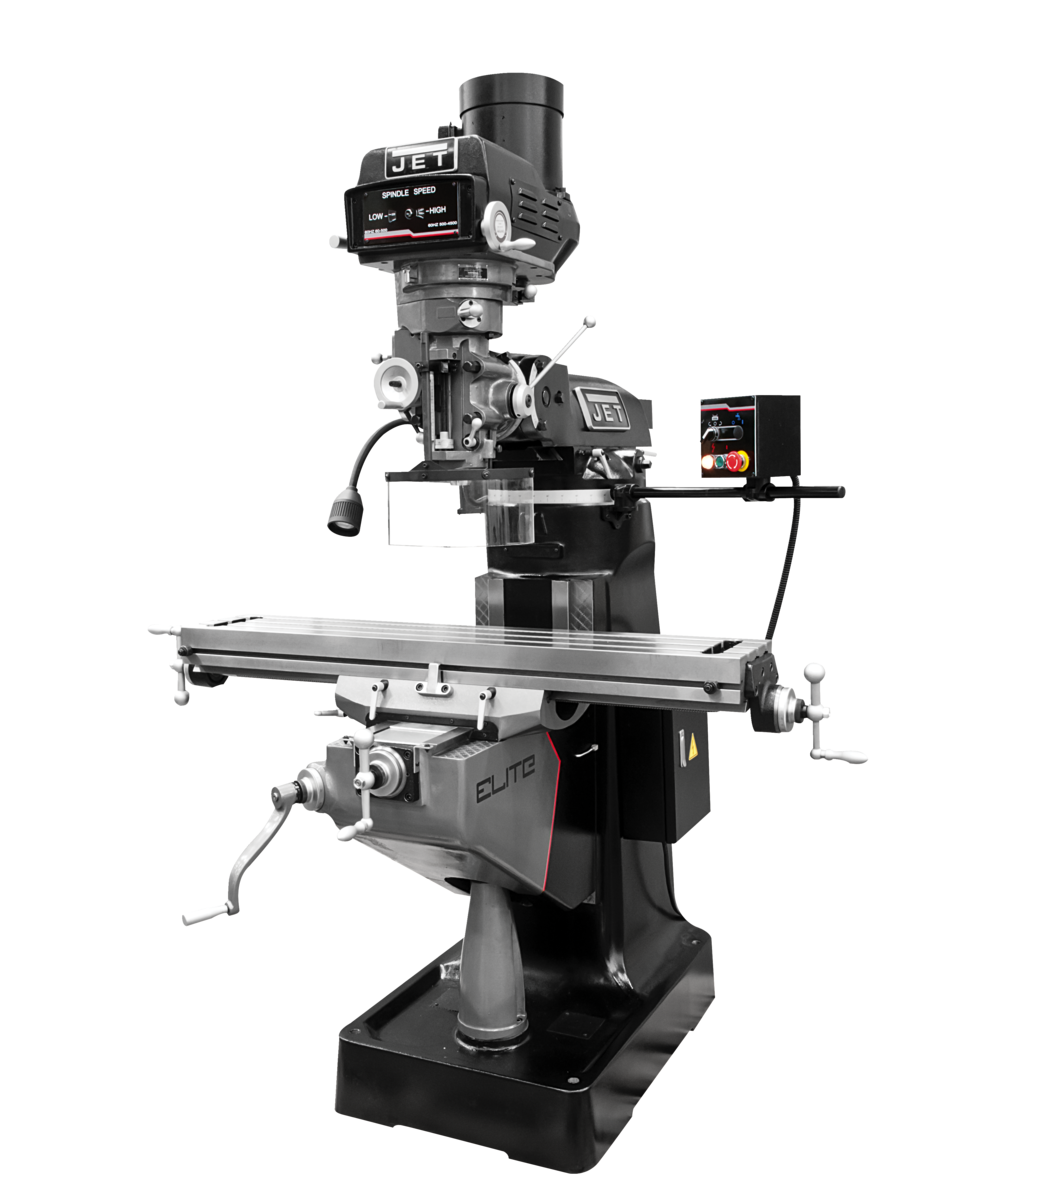 ETM-949 Mill with 3-Axis ACU-RITE 303  (Knee) DRO and X, Y, Z-Axis JET Powerfeeds and USA Made Air Draw Bar